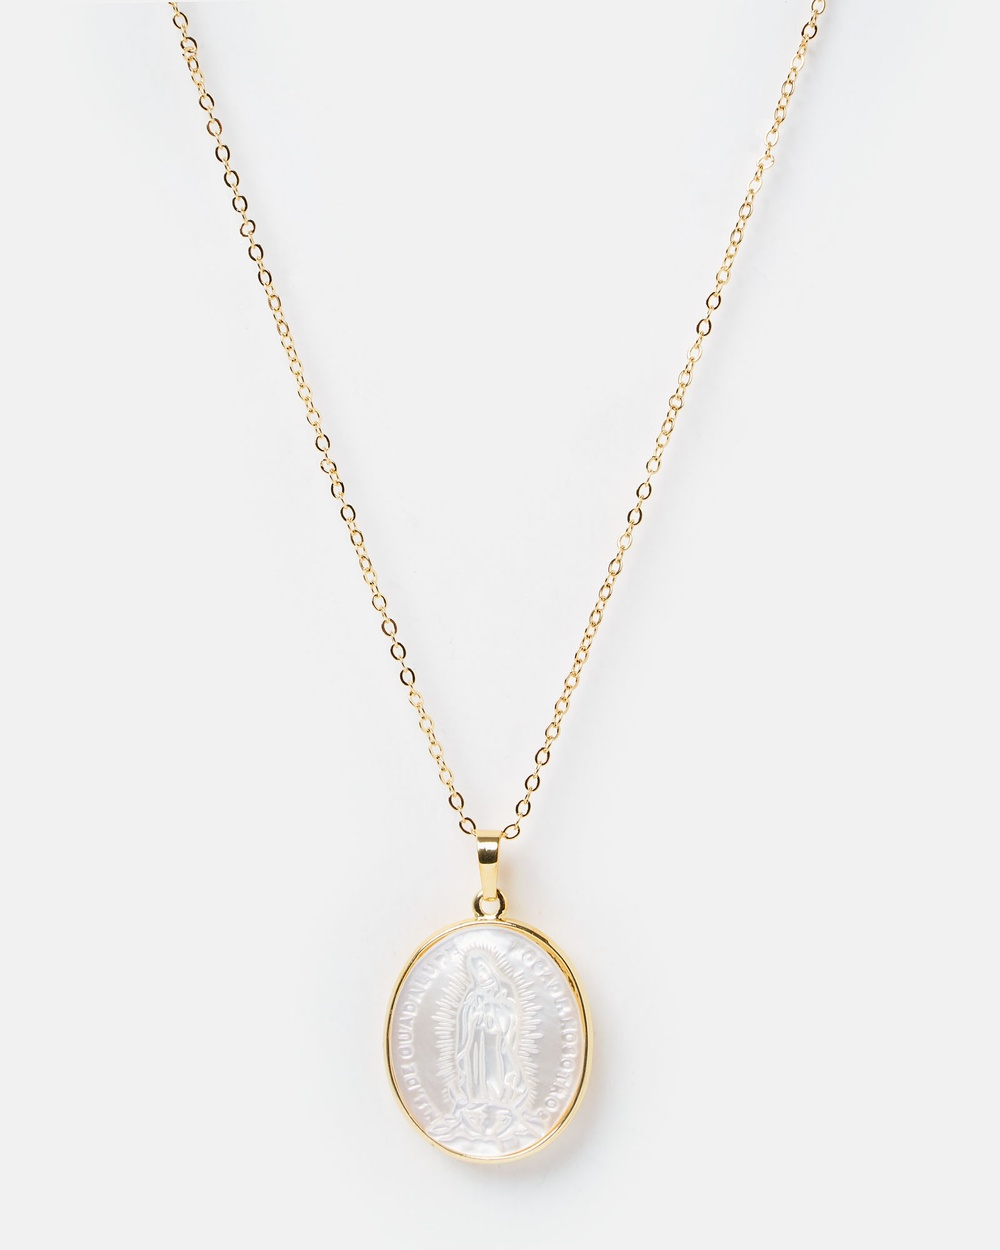 Miz Casa and Co Saintly Medallion Coin Necklace Jewellery Gold